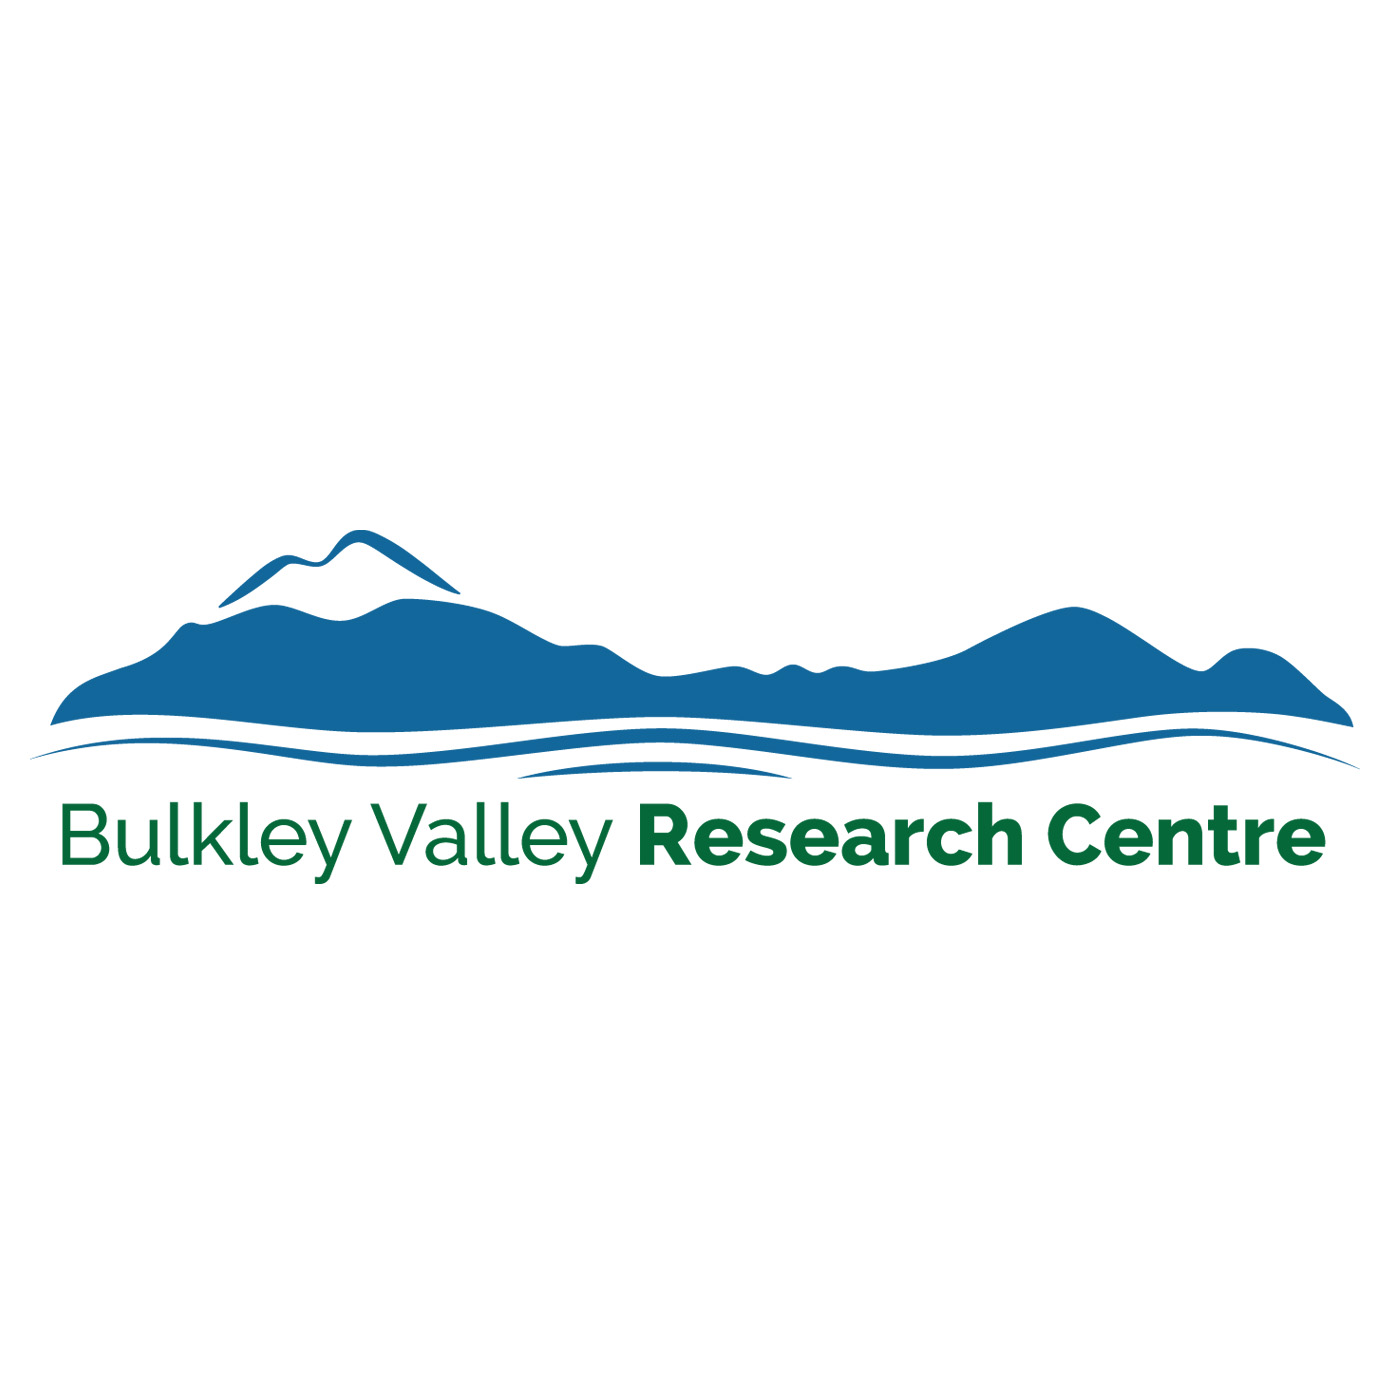 Bulkley Valley Research Centre – Eco-Radical Organizations